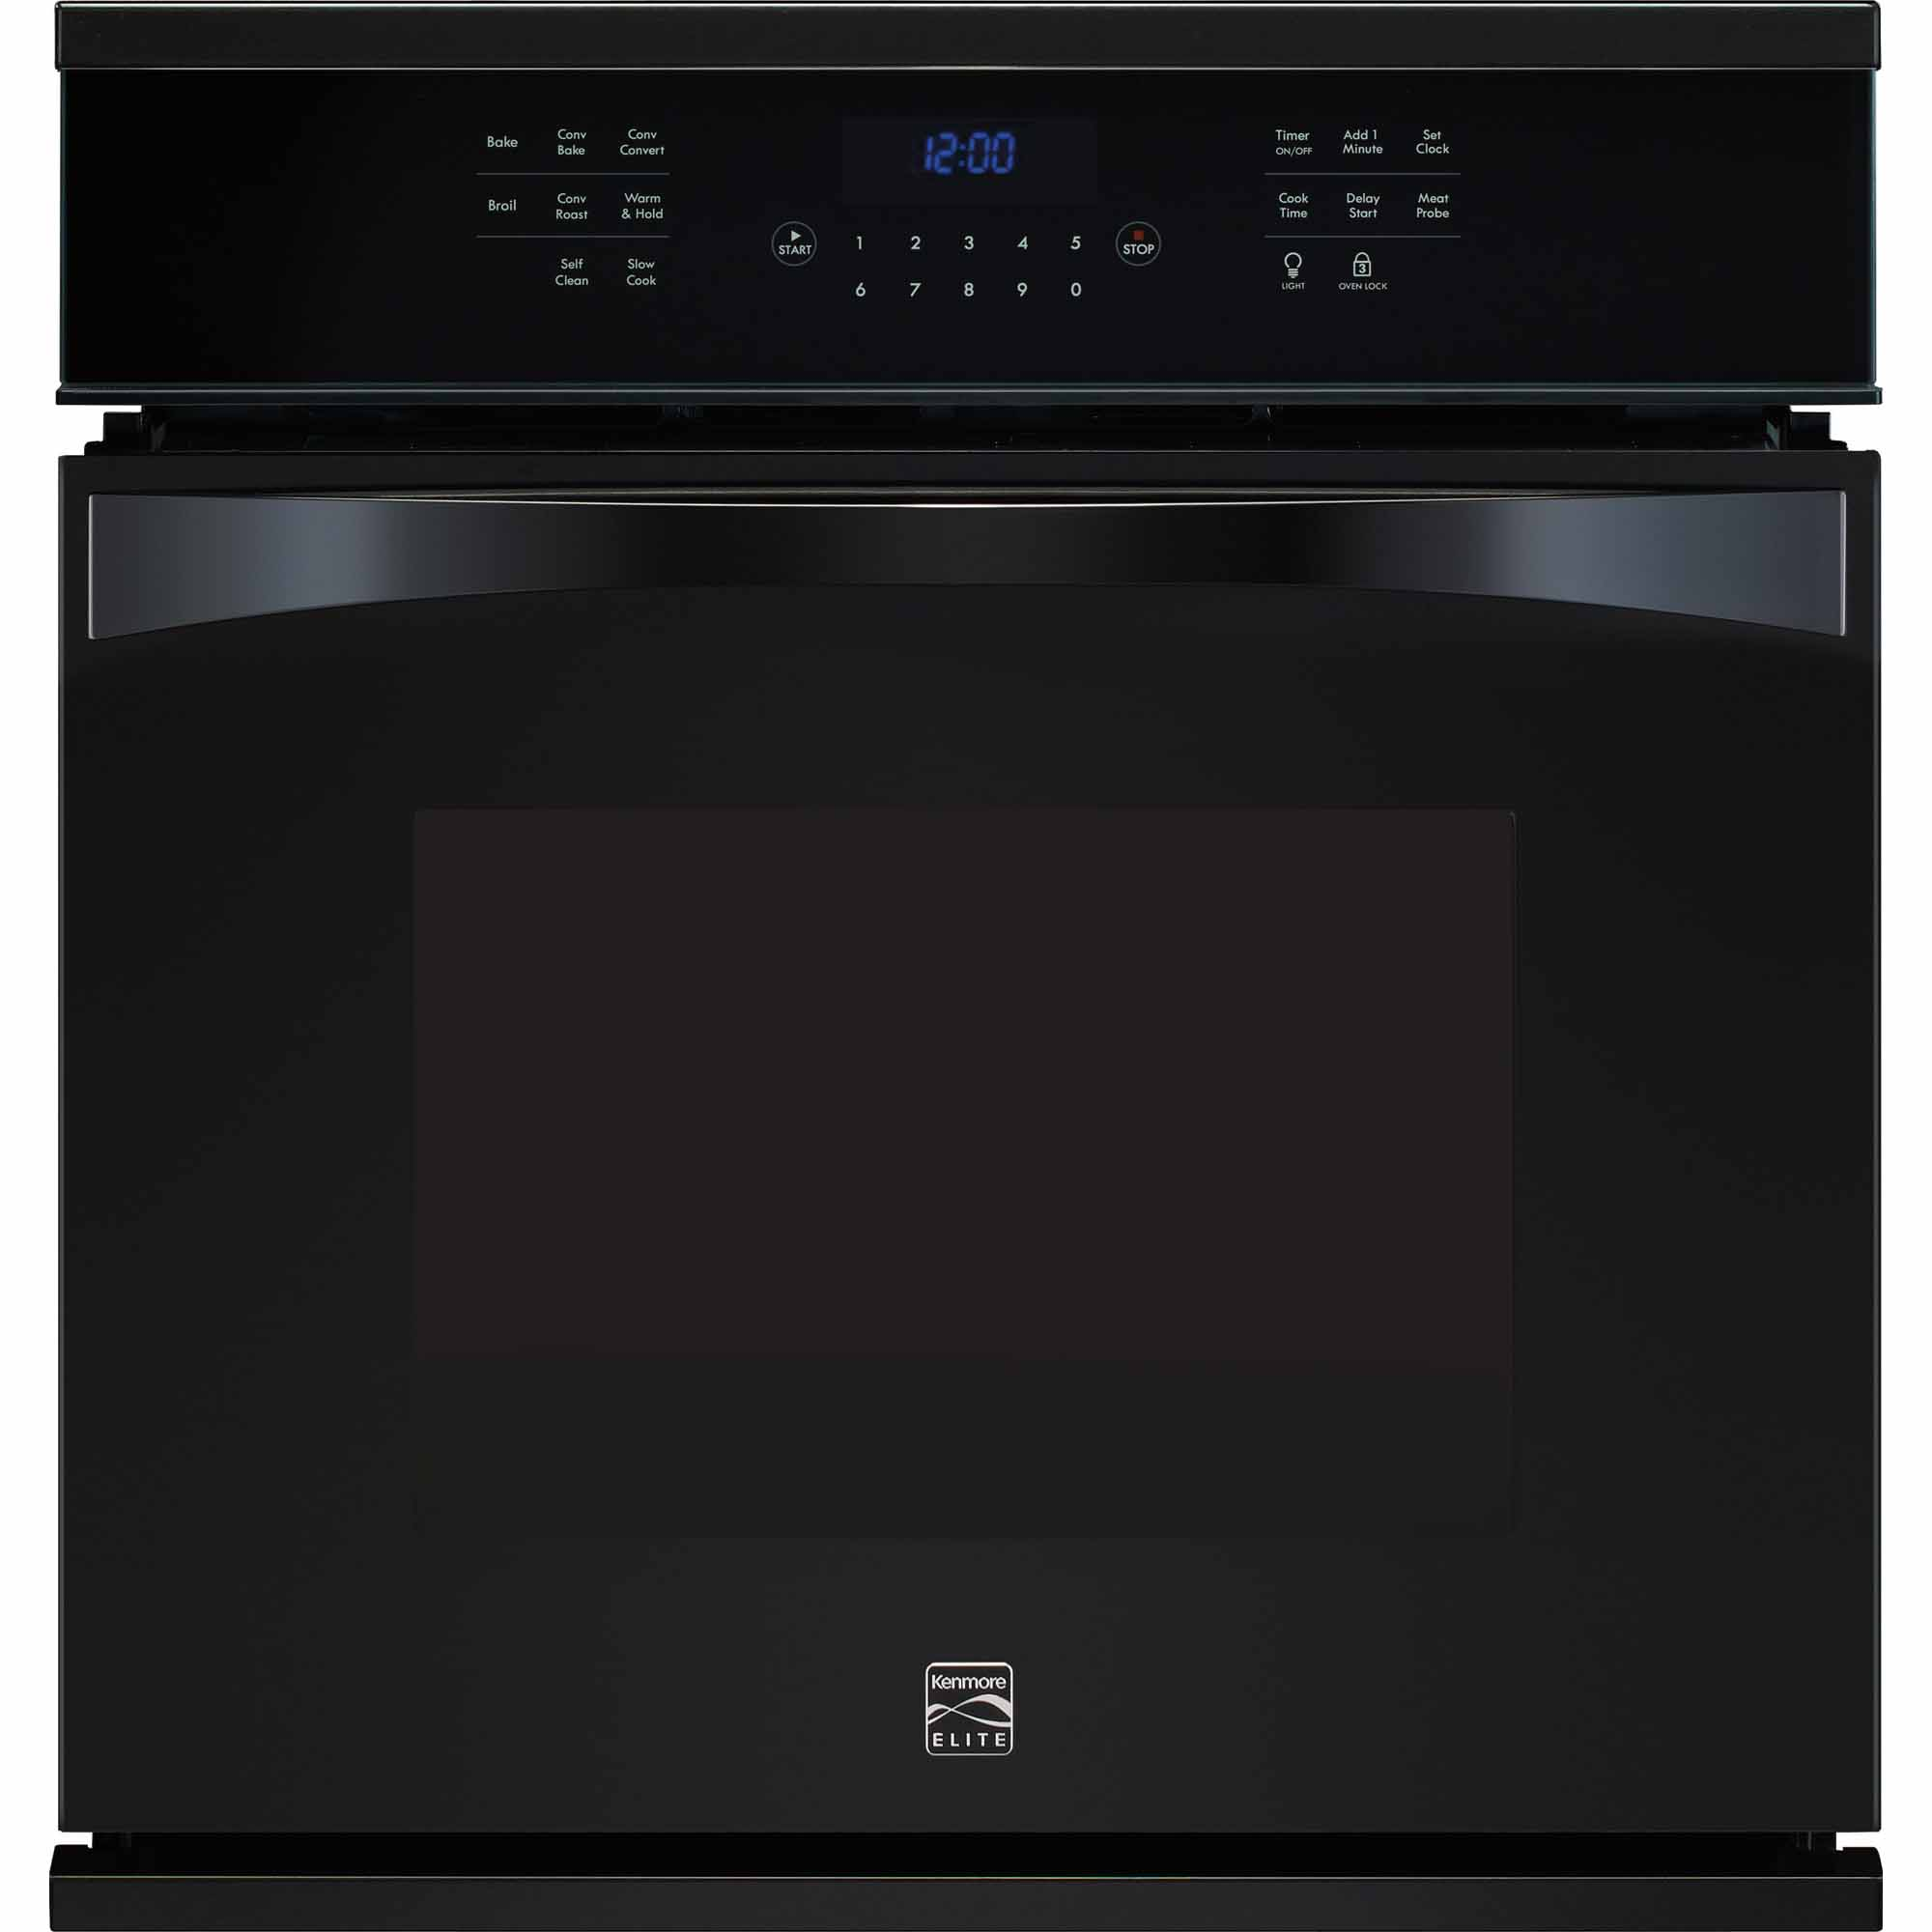 Kenmore Elite 48349 27 Electric Single Wall Oven - Black 48349